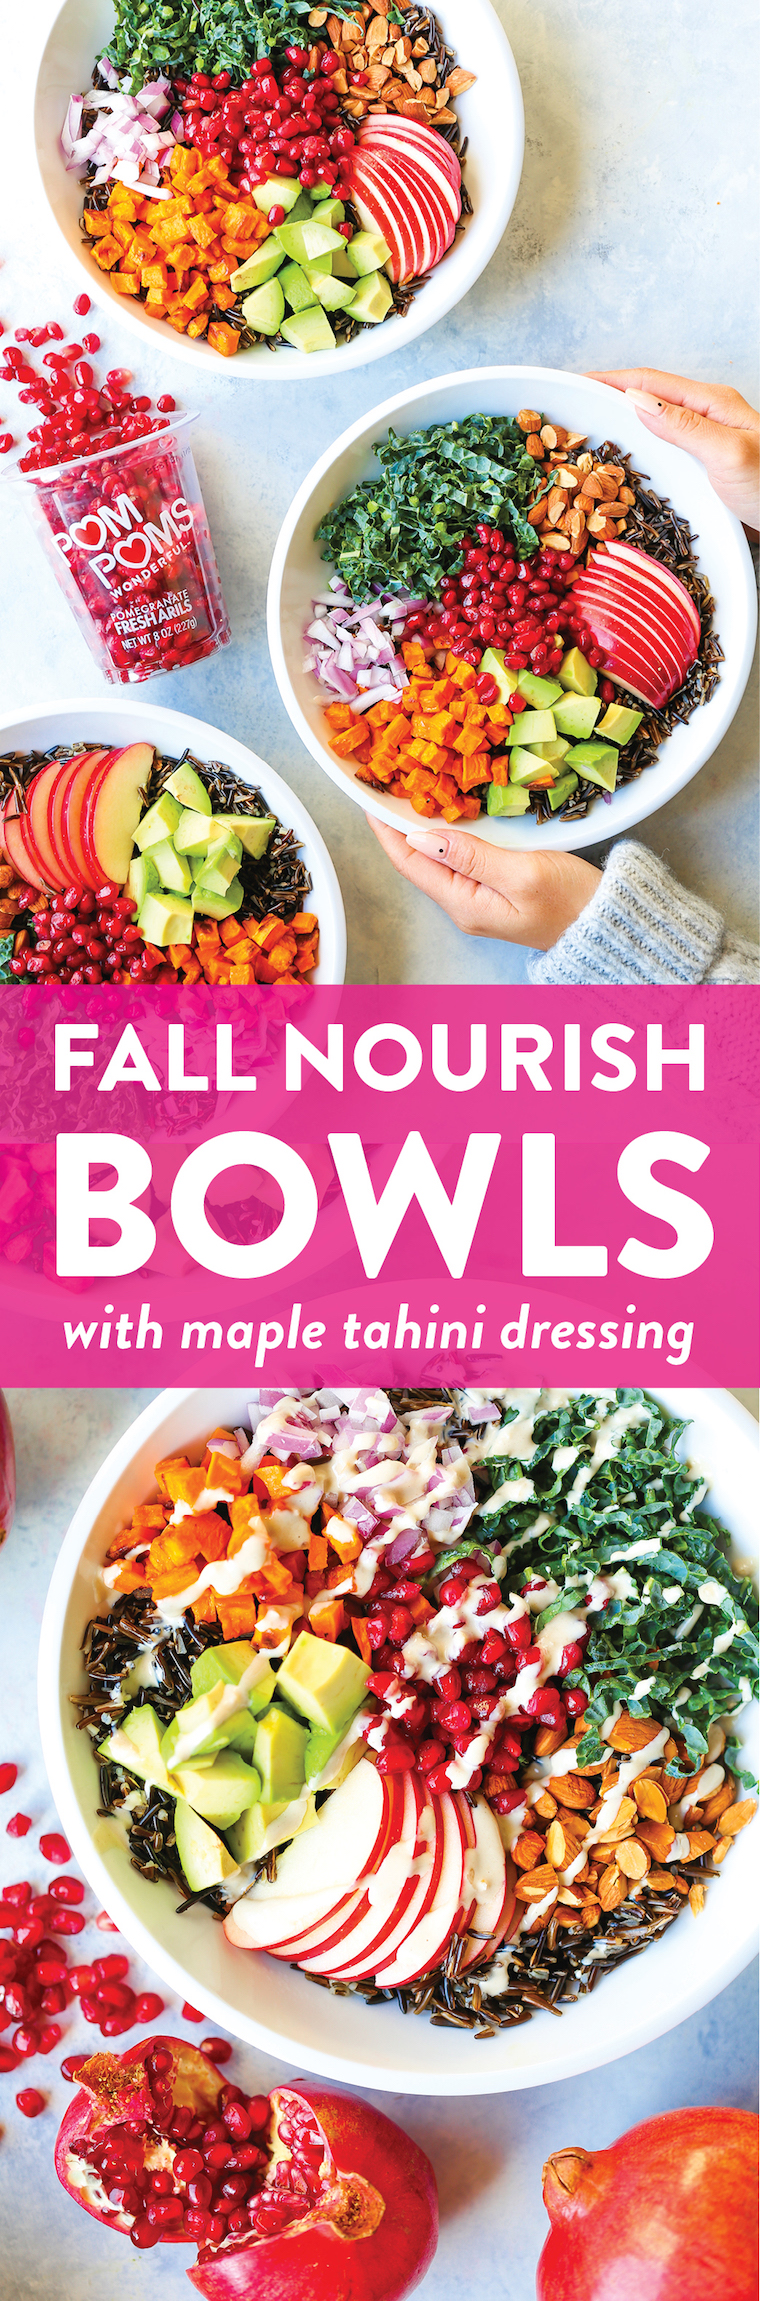 Fall Nourish Bowls - Filled with so many different veggies, these bowls are well-balanced, hearty and HEALTHY! Made with a maple-tahini dressing. SO GOOD!!!